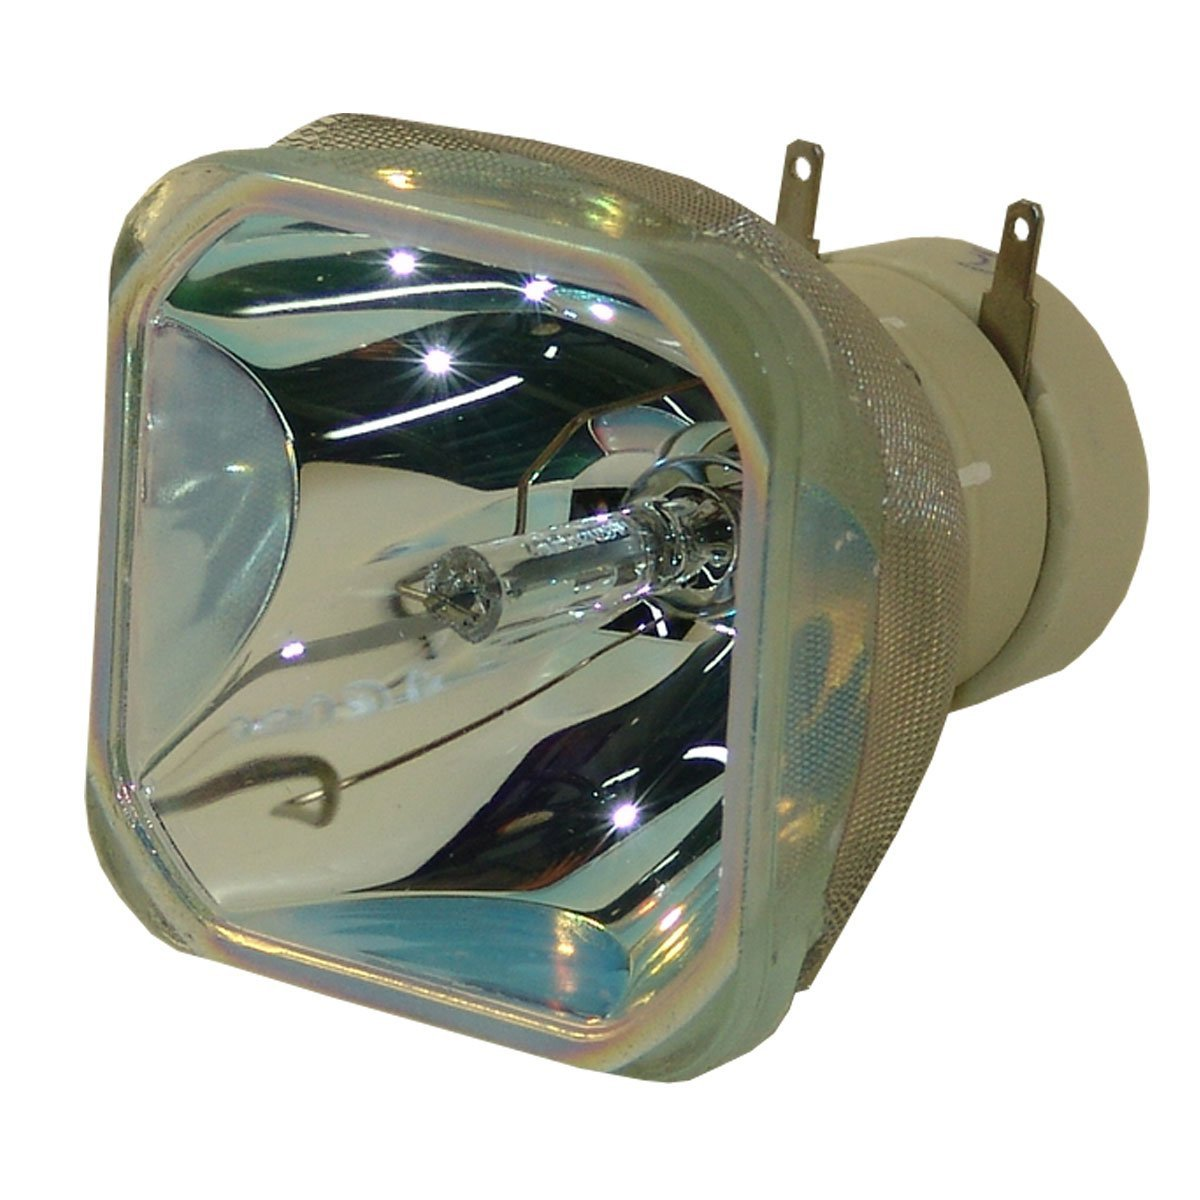 Compatible Bare Bulb DT01021 for HITACHI CP-X2010 CP-X2510 X2510 CP-X2010N Projector Lamp Bulb Without housing Free Shipping free shipping compatible projector lamp for hitachi cp x3